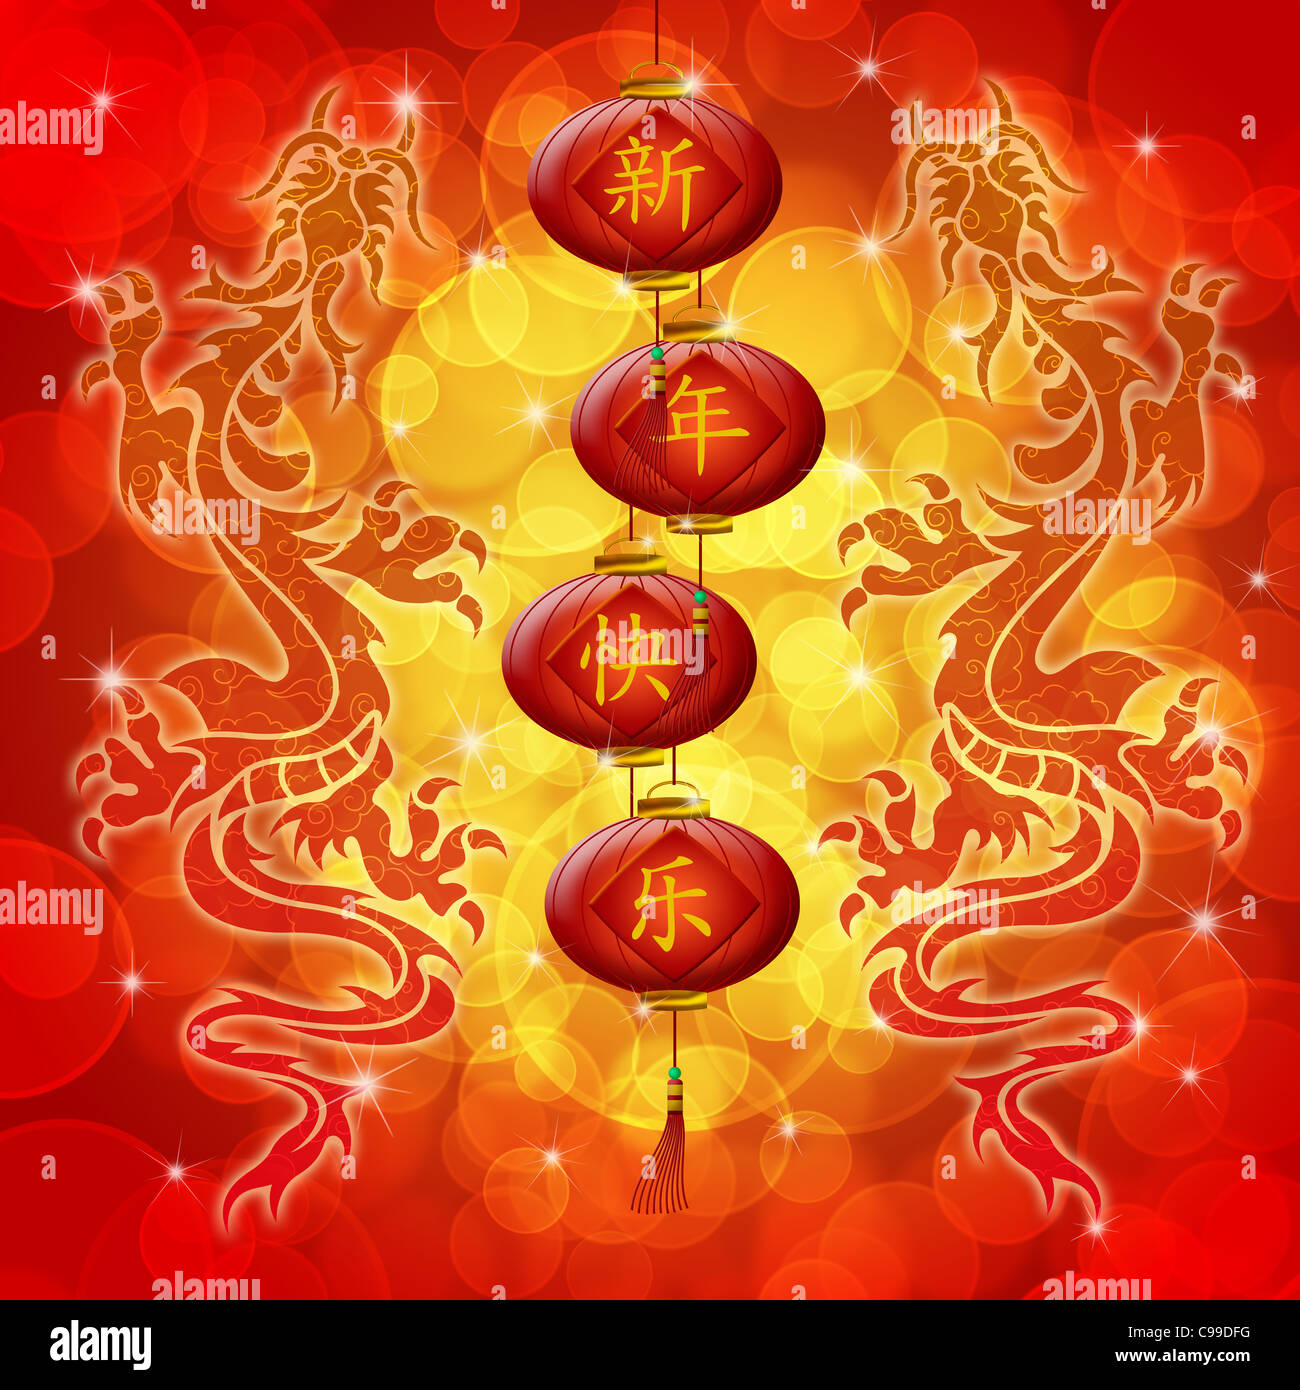 Double Archaic Dragons with Happy Chinese New Year Wishes Text on ...